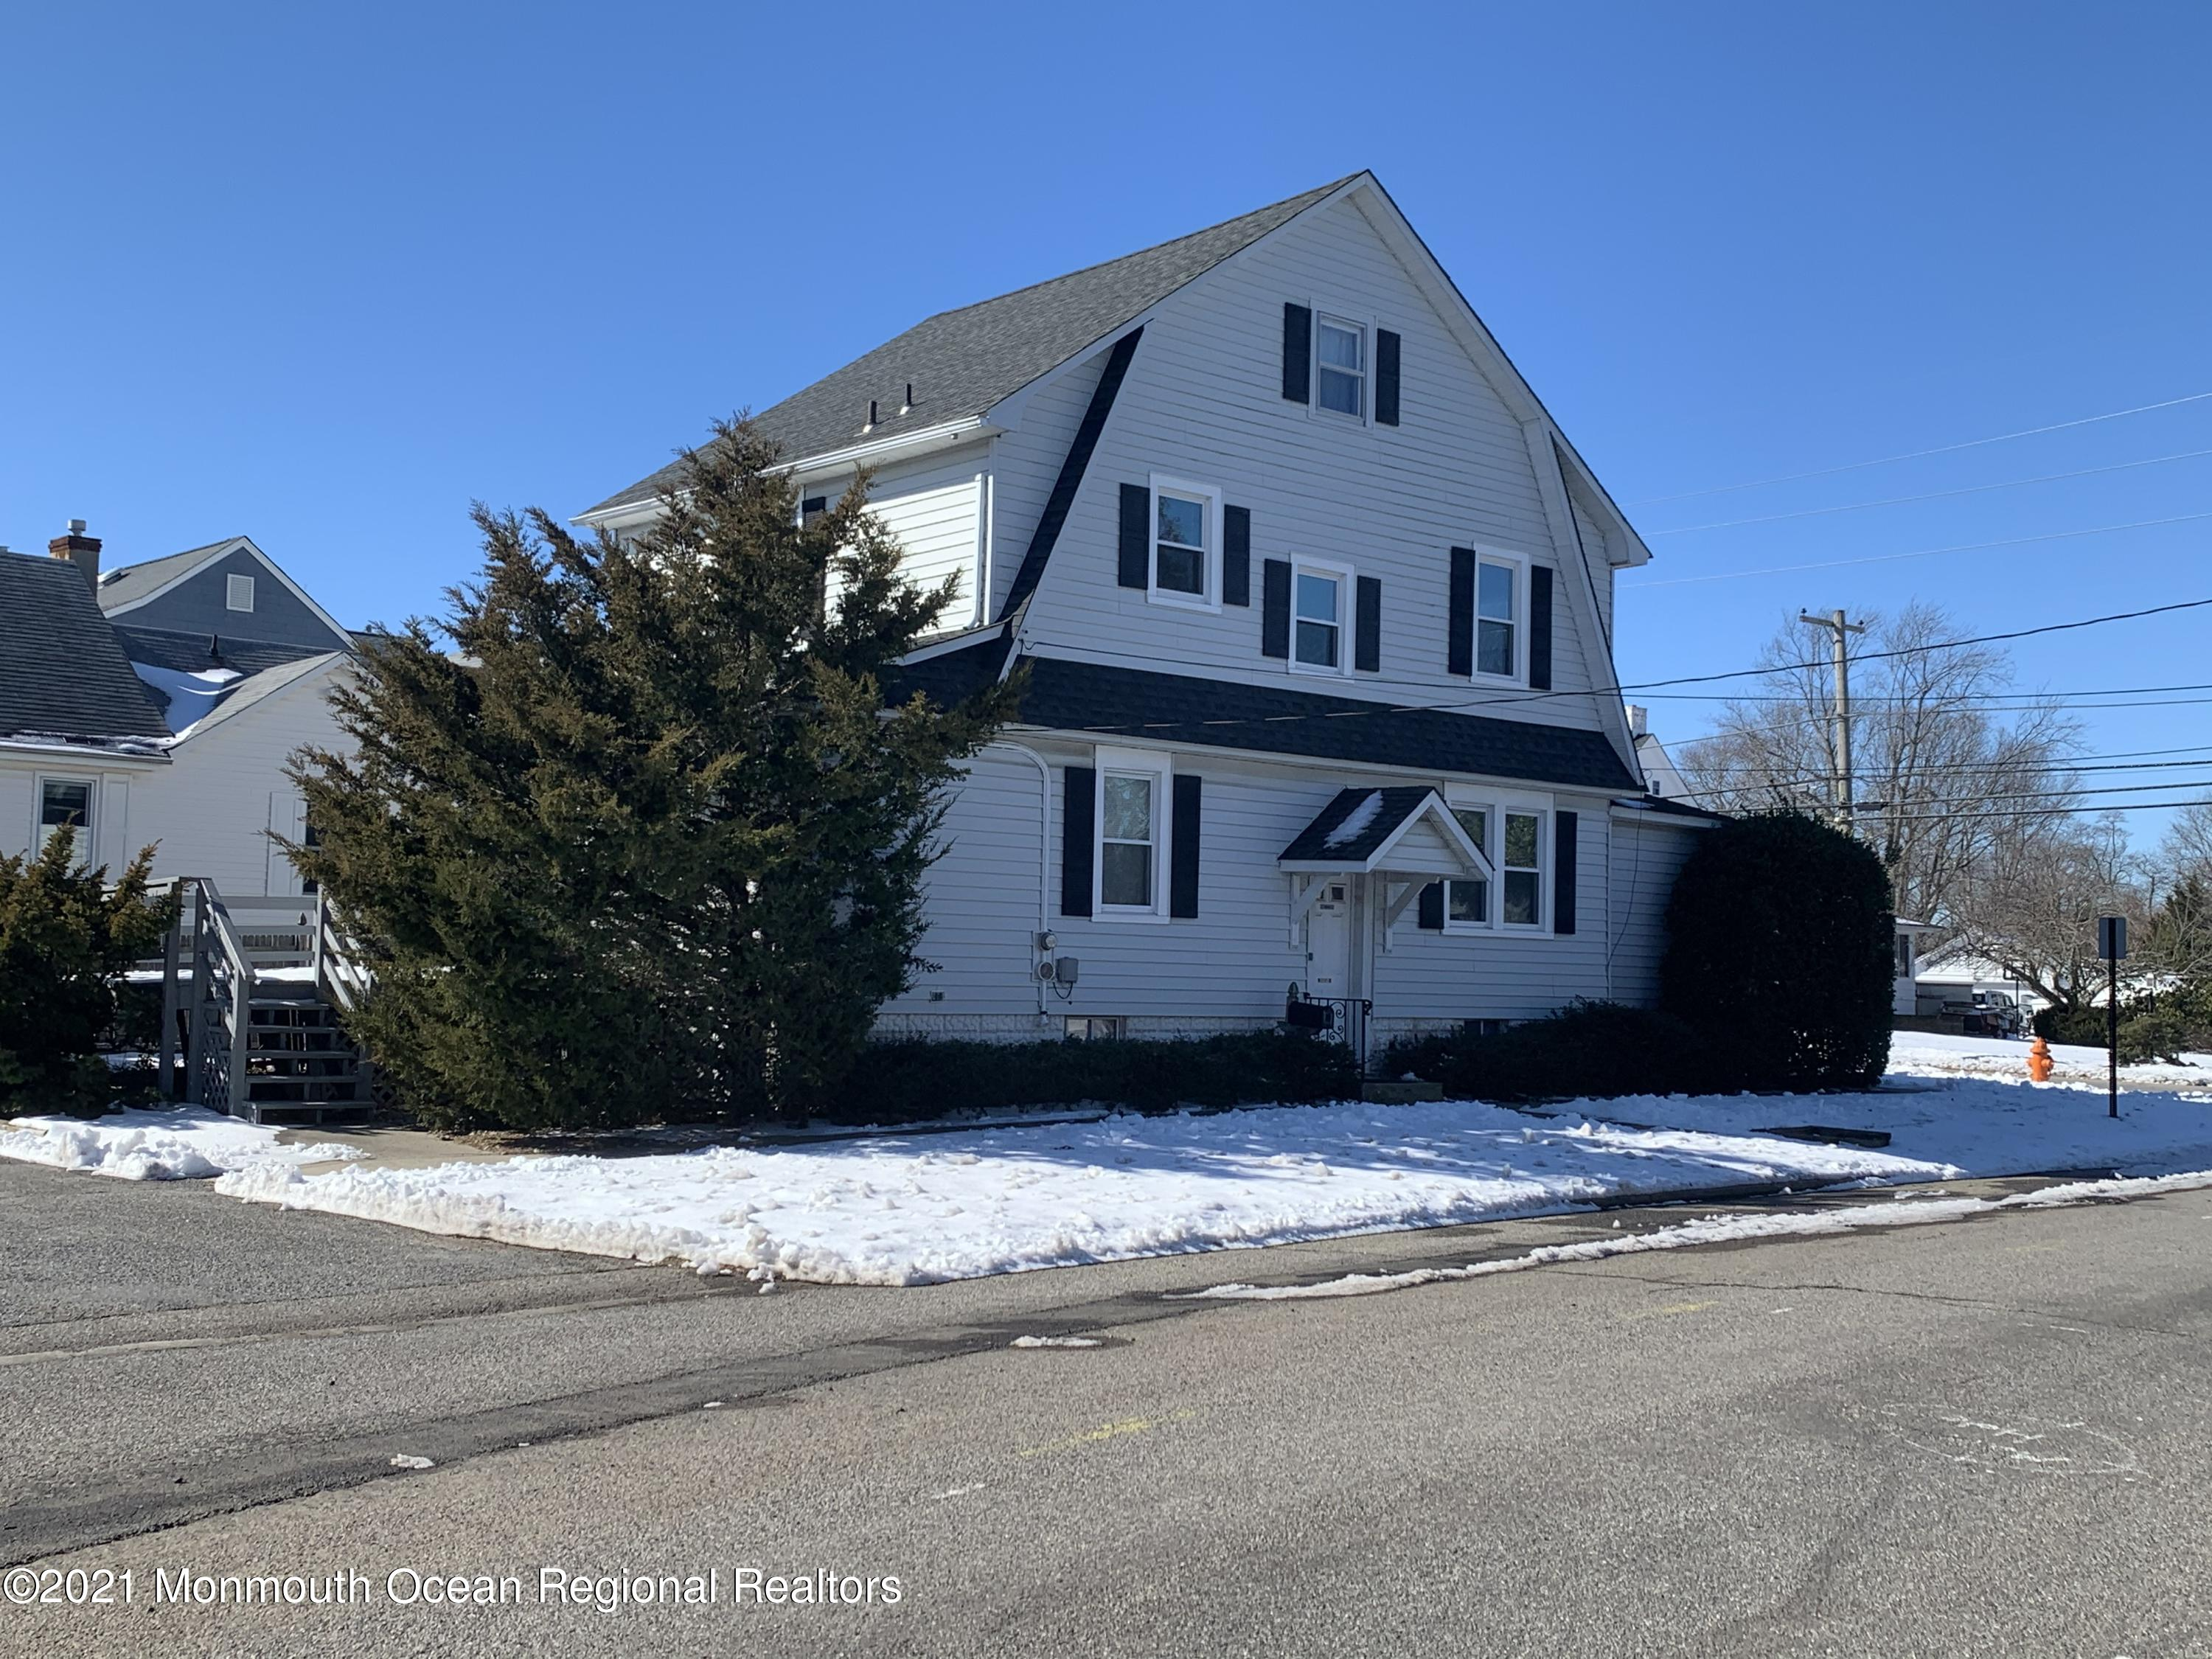 1100 Arnold Avenue, Point Pleasant, New Jersey 08742, 4 Bedrooms Bedrooms, ,2 BathroomsBathrooms,Single Family,For Sale,1100 Arnold Avenue,2,22105182